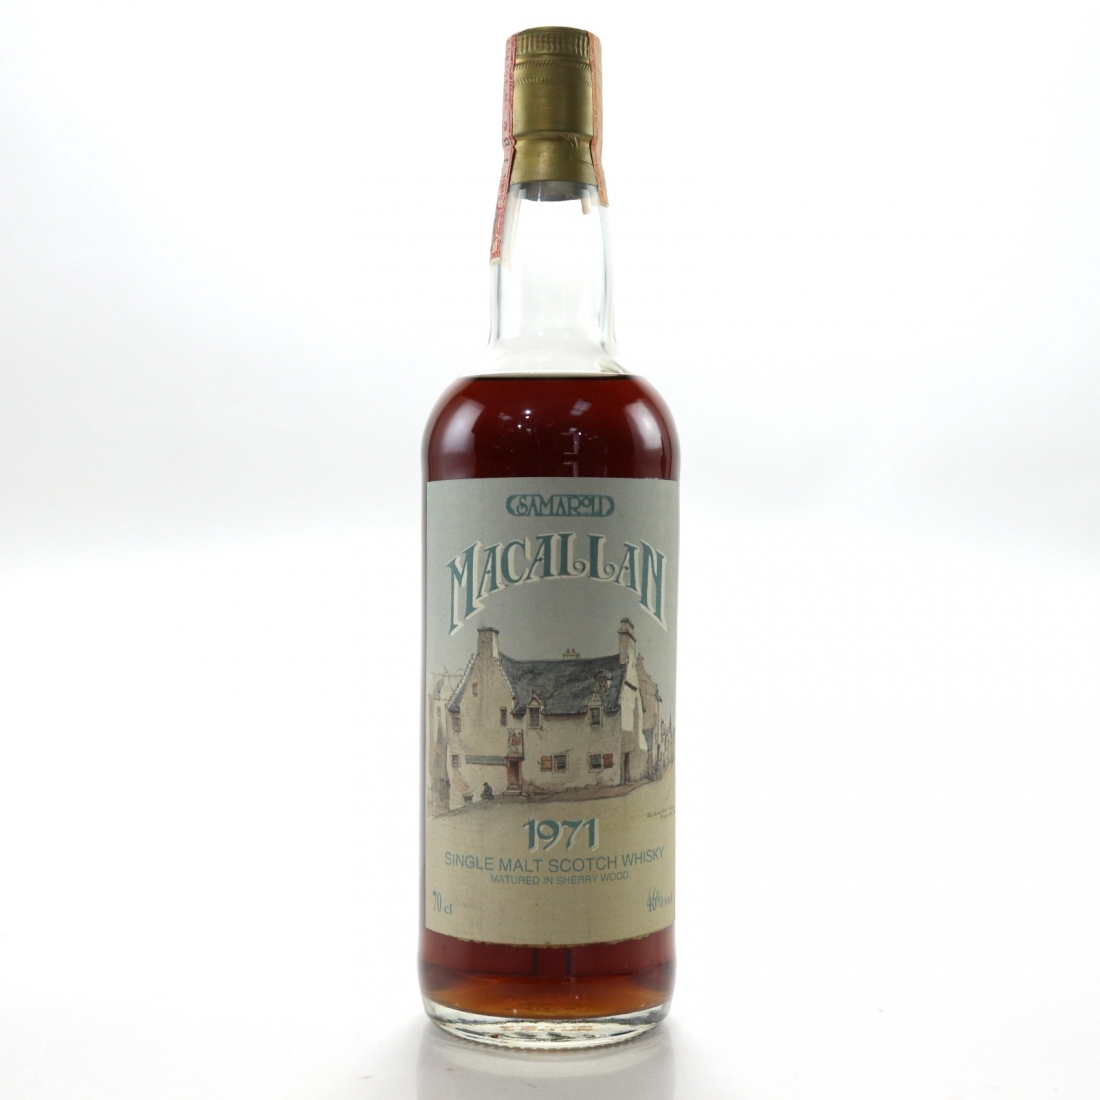 Macallan 1971 Samaroli Sherry Wood / Curved Distillery Label